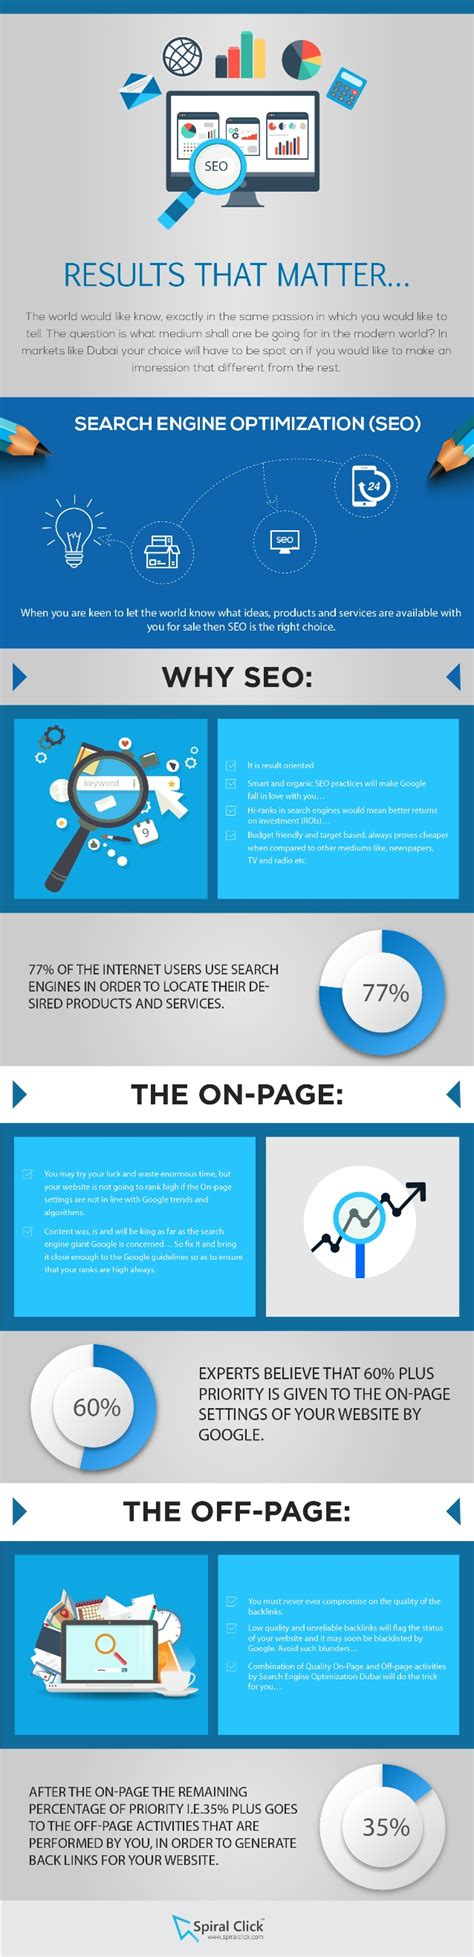 optimize search engine results results that matter search engine optimization